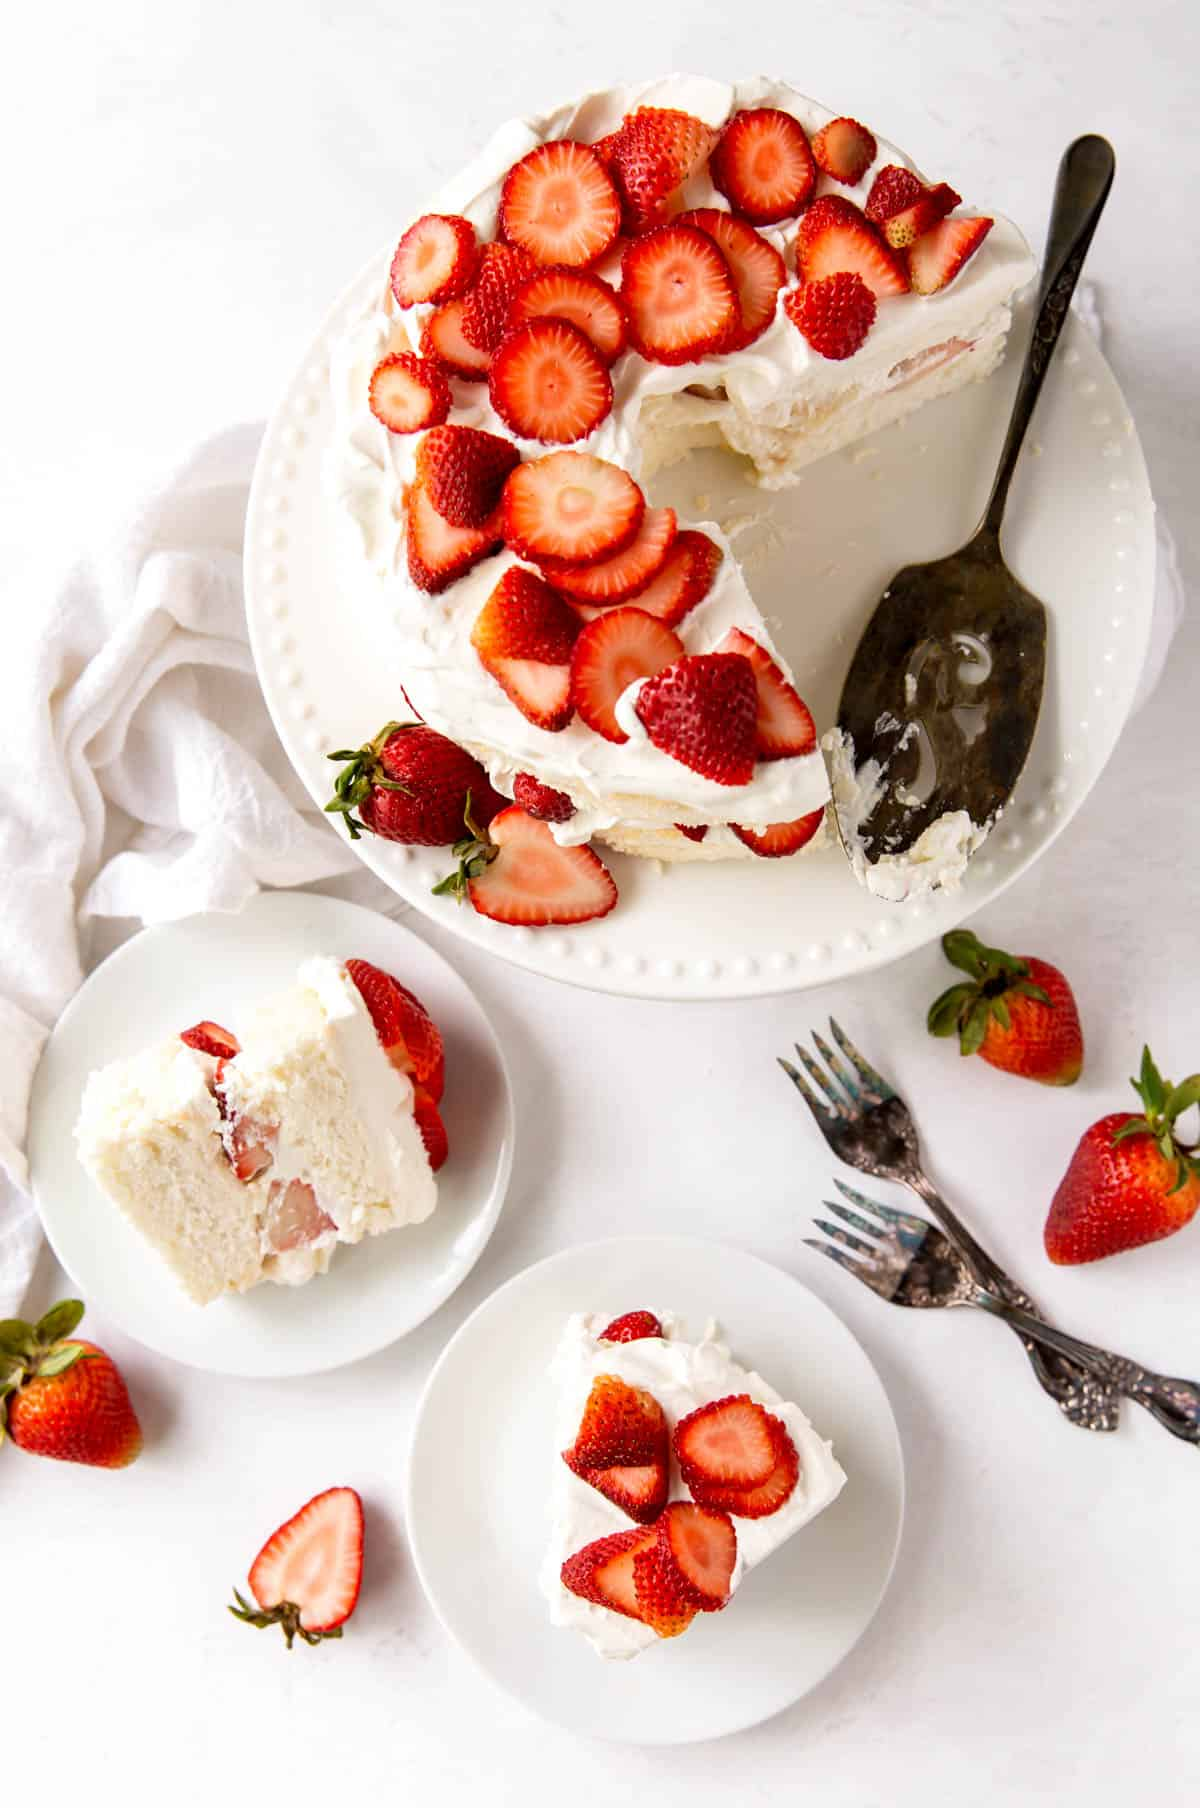 Aerial view of the best angel food cake, with two slices cut on serving plates, topped with fresh strawberries